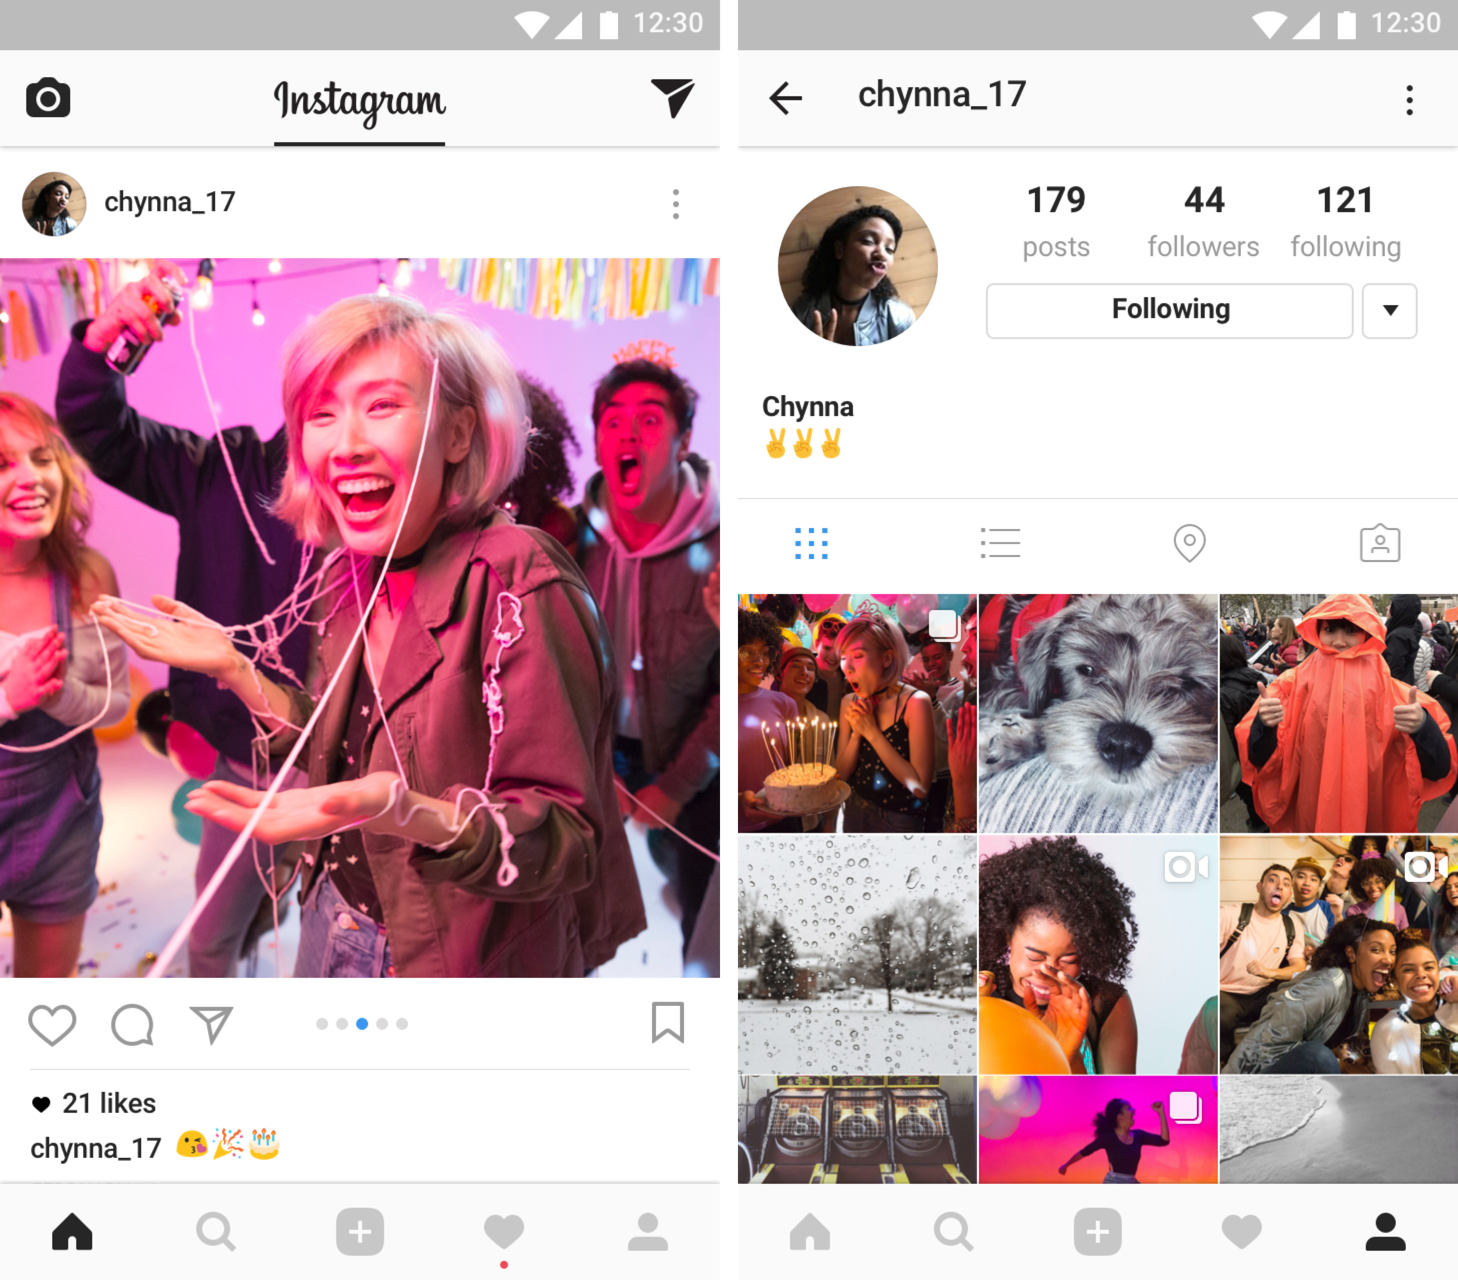 Instagram Users Can Now Upload Up to 10 Photos/Videos at Once